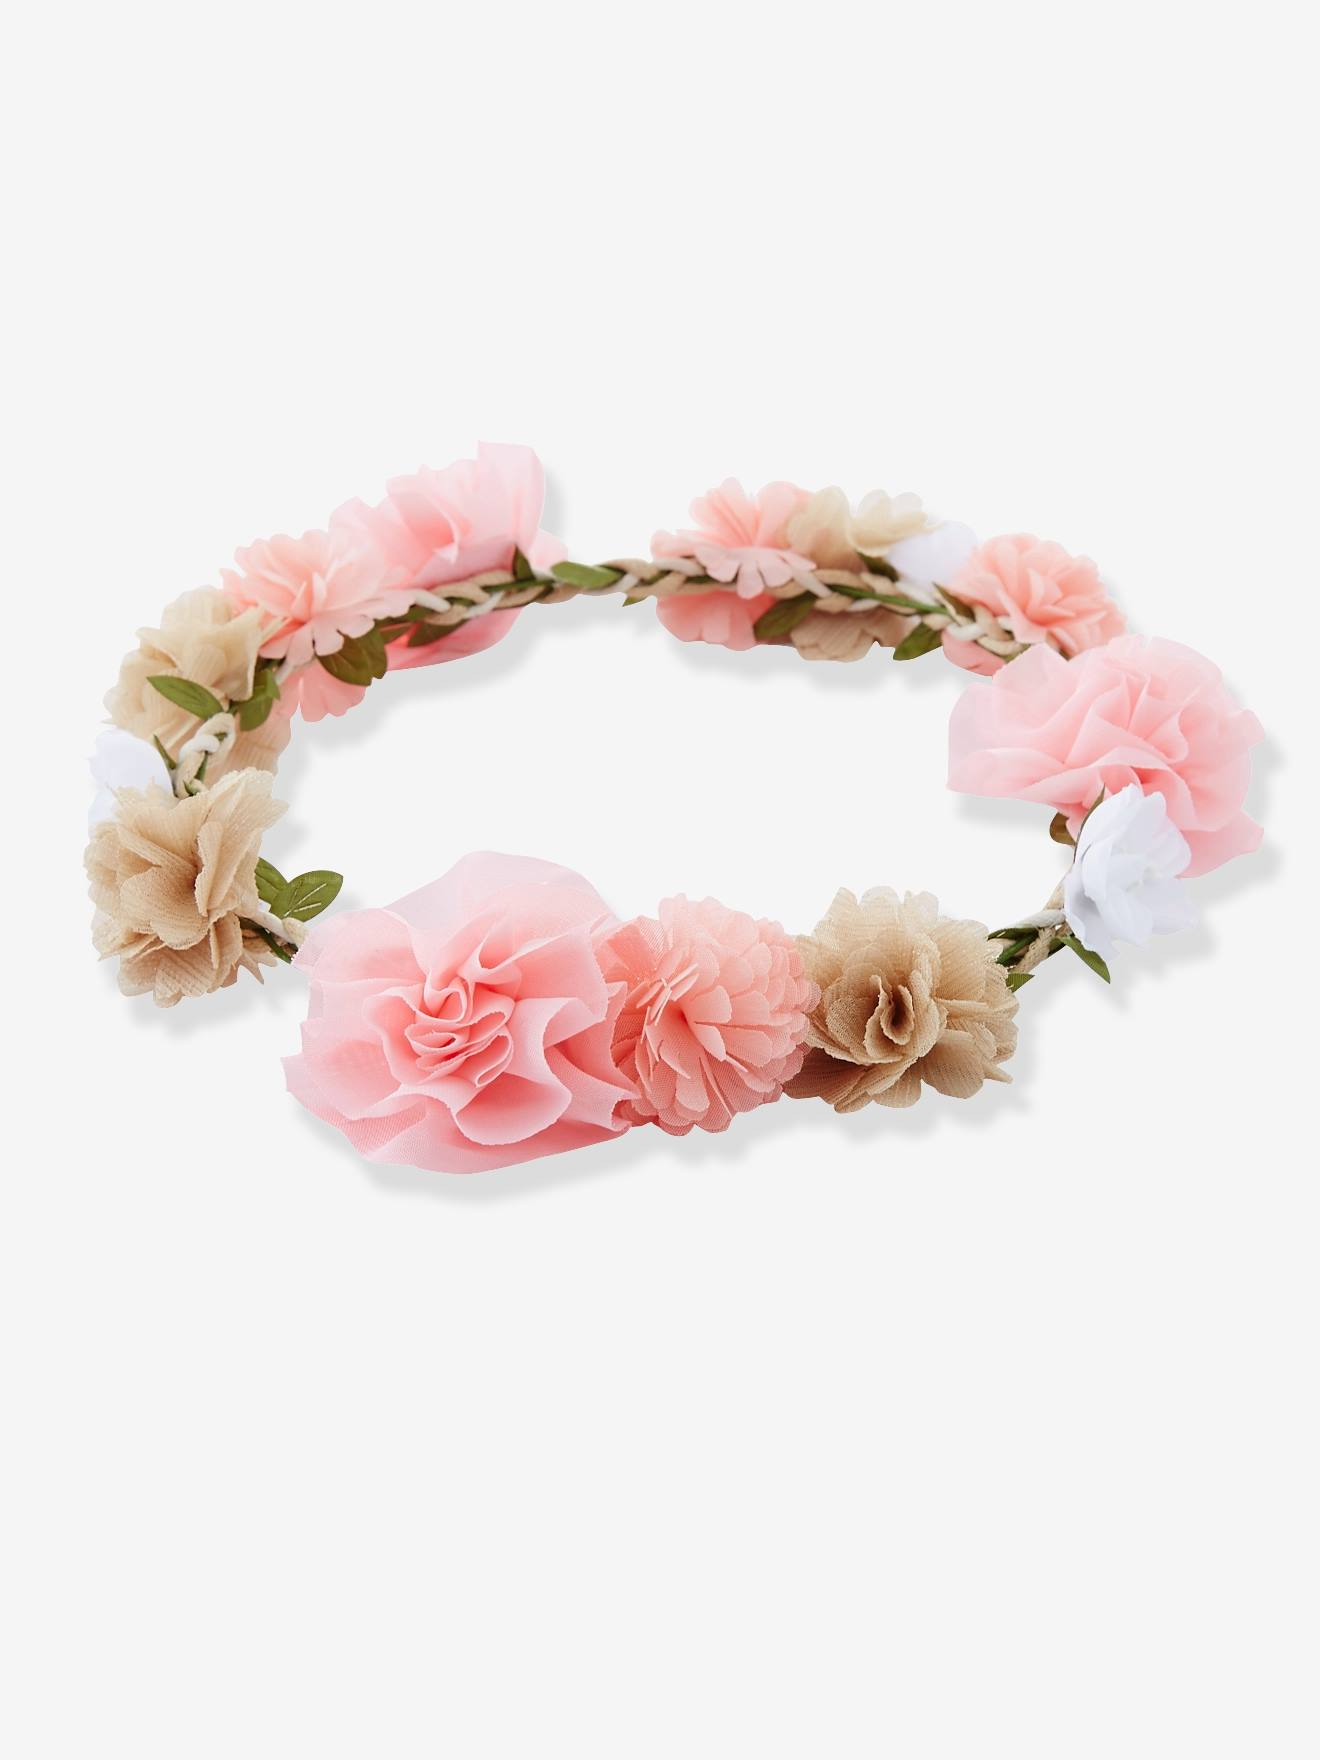 Girls Flower Crown Pale Pink Pink Grey Whit Girls